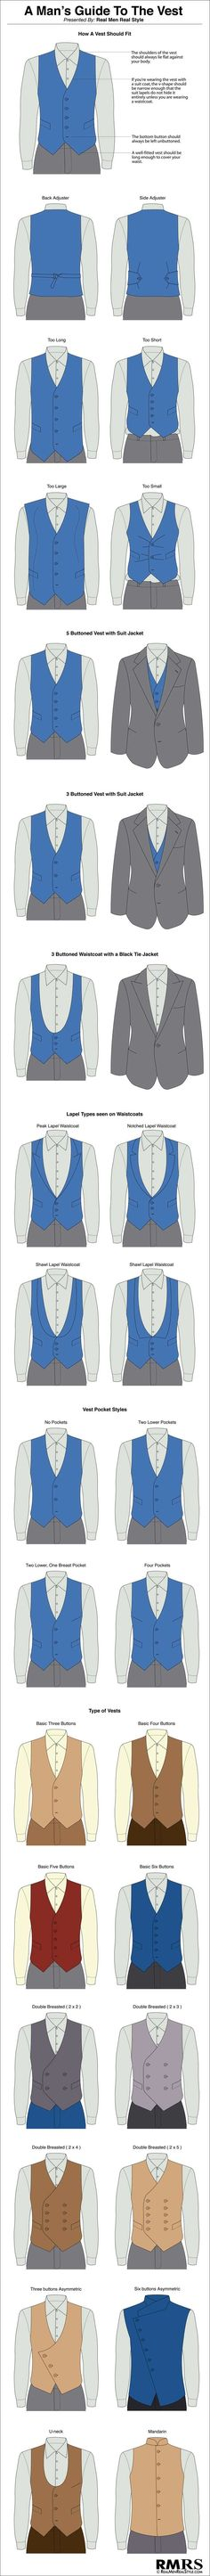 A Mans Guide To The Vest | Repined by www.movingforlove... . . . . . der Blog für den Gentleman - www.thegentlemanclub.de/blog